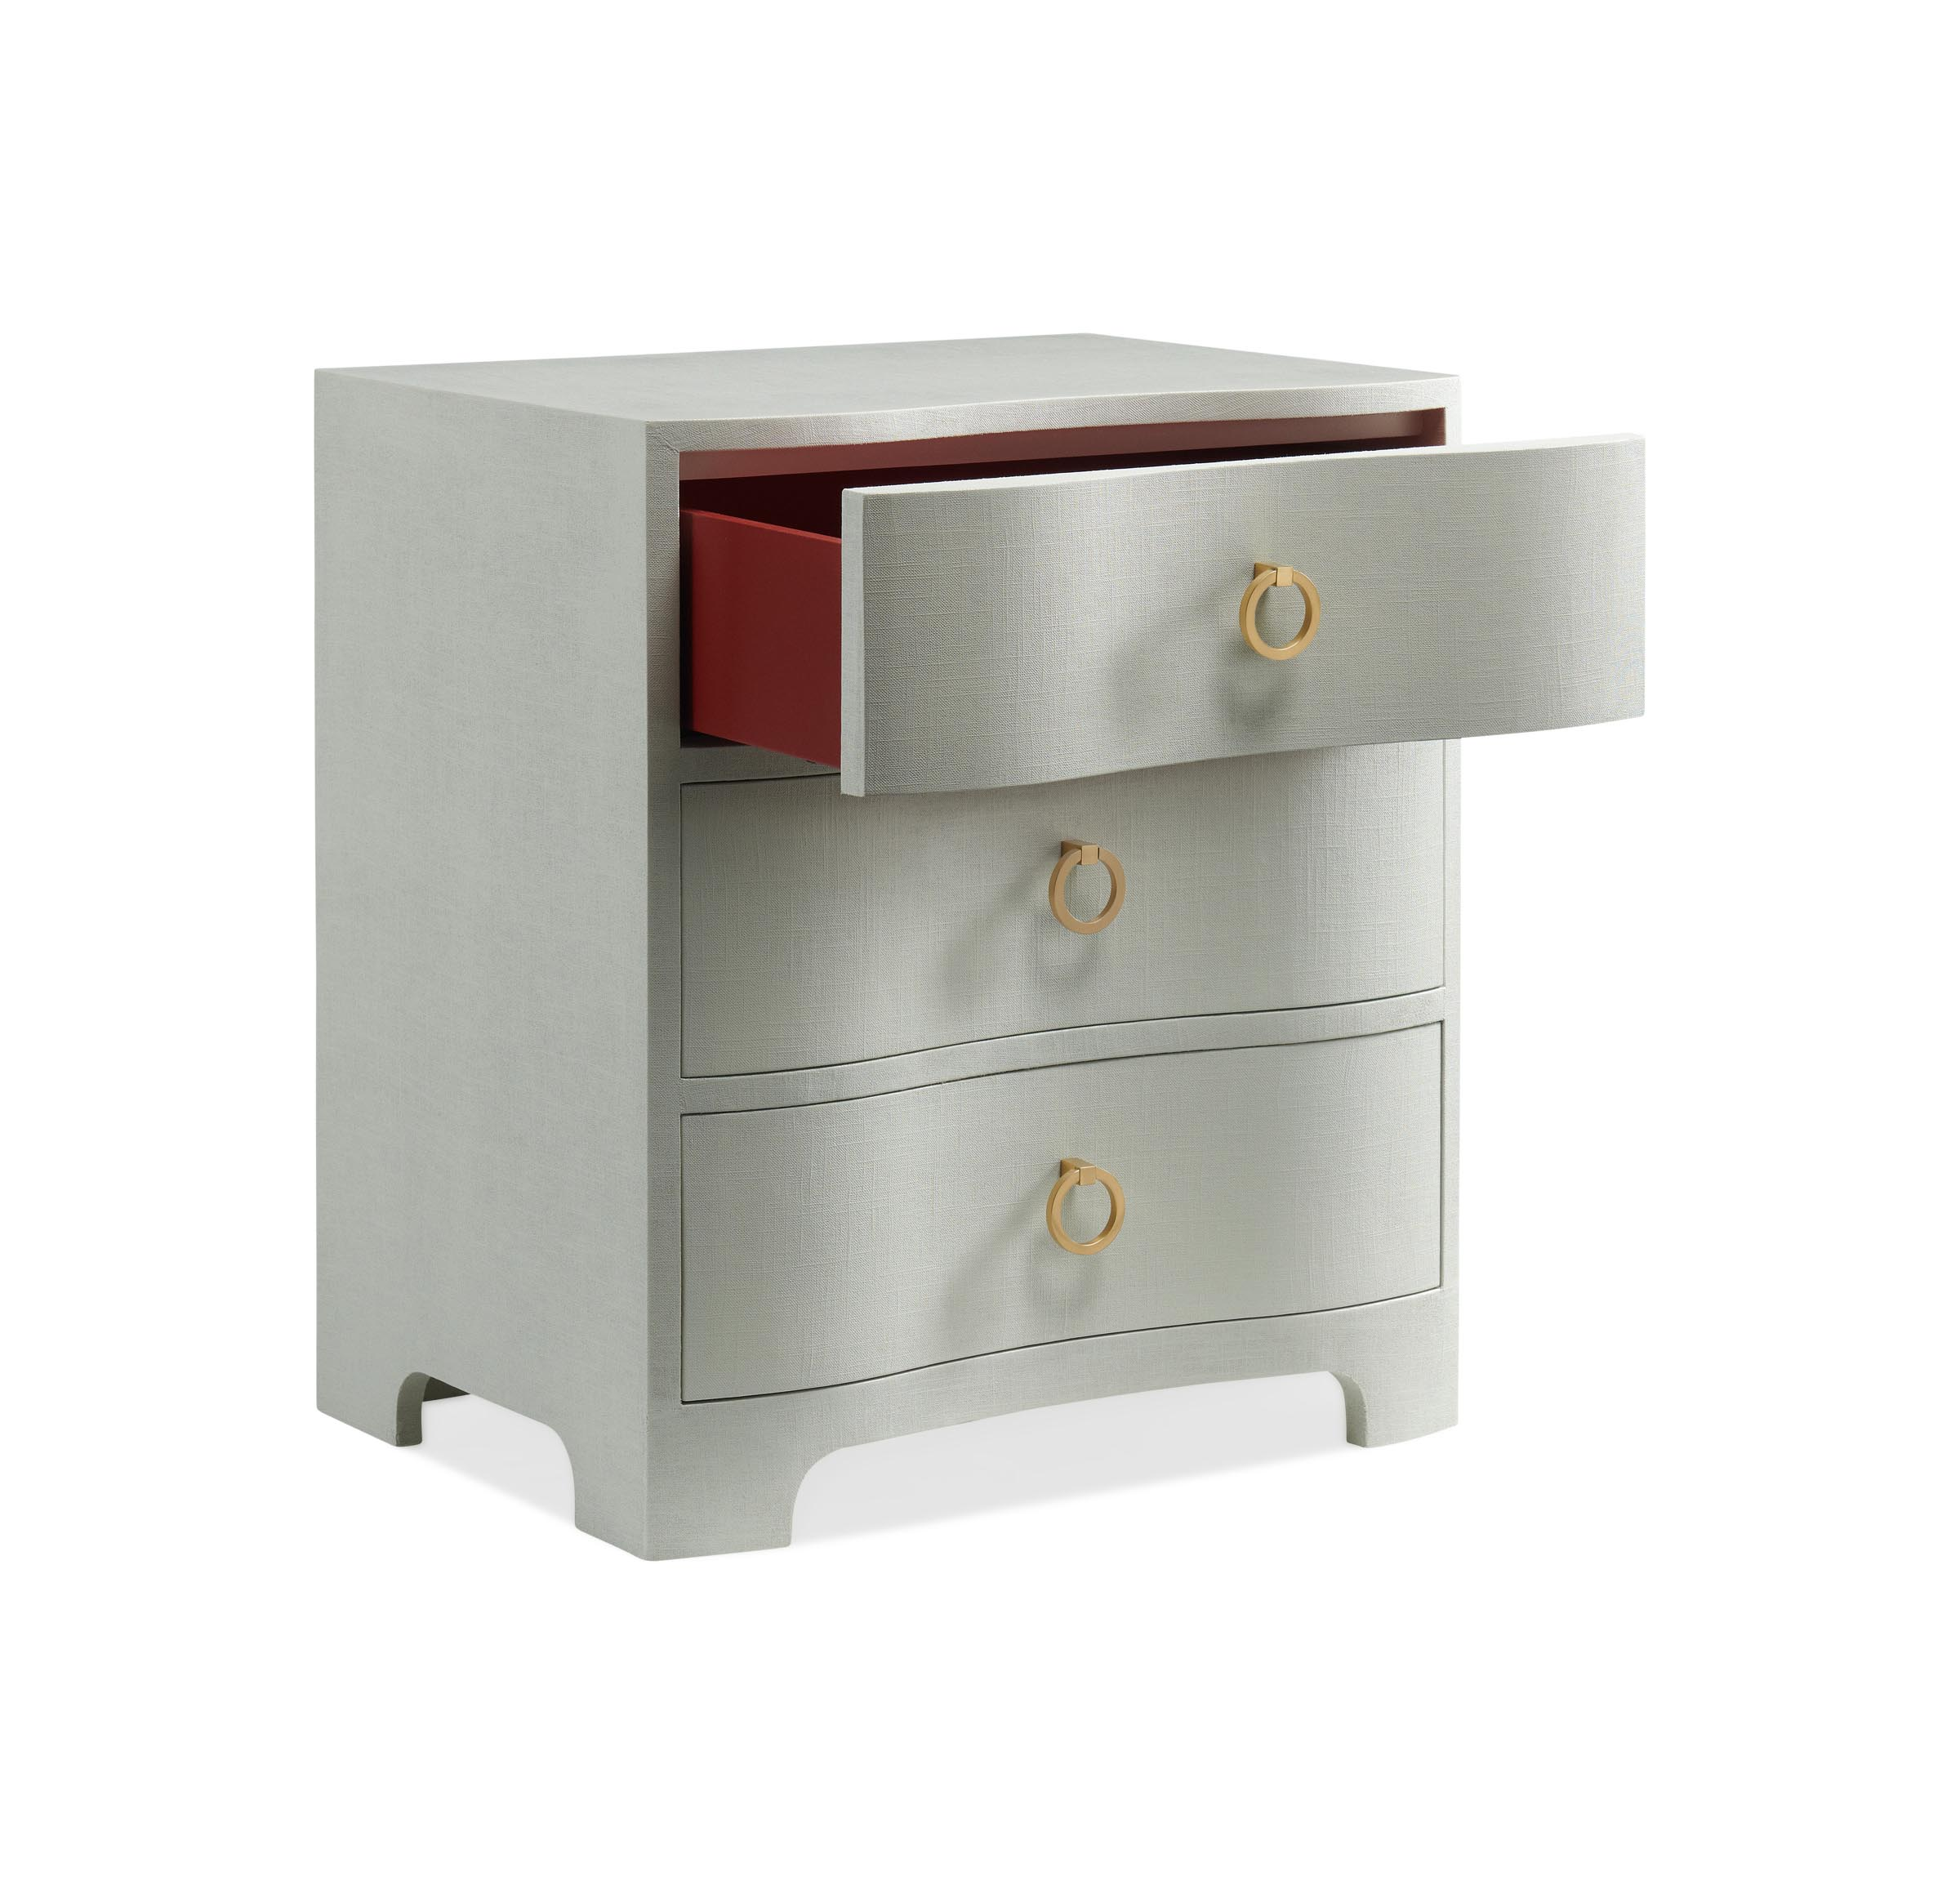 JULIET SMALL 3 DRAWER CHEST, , hi-res